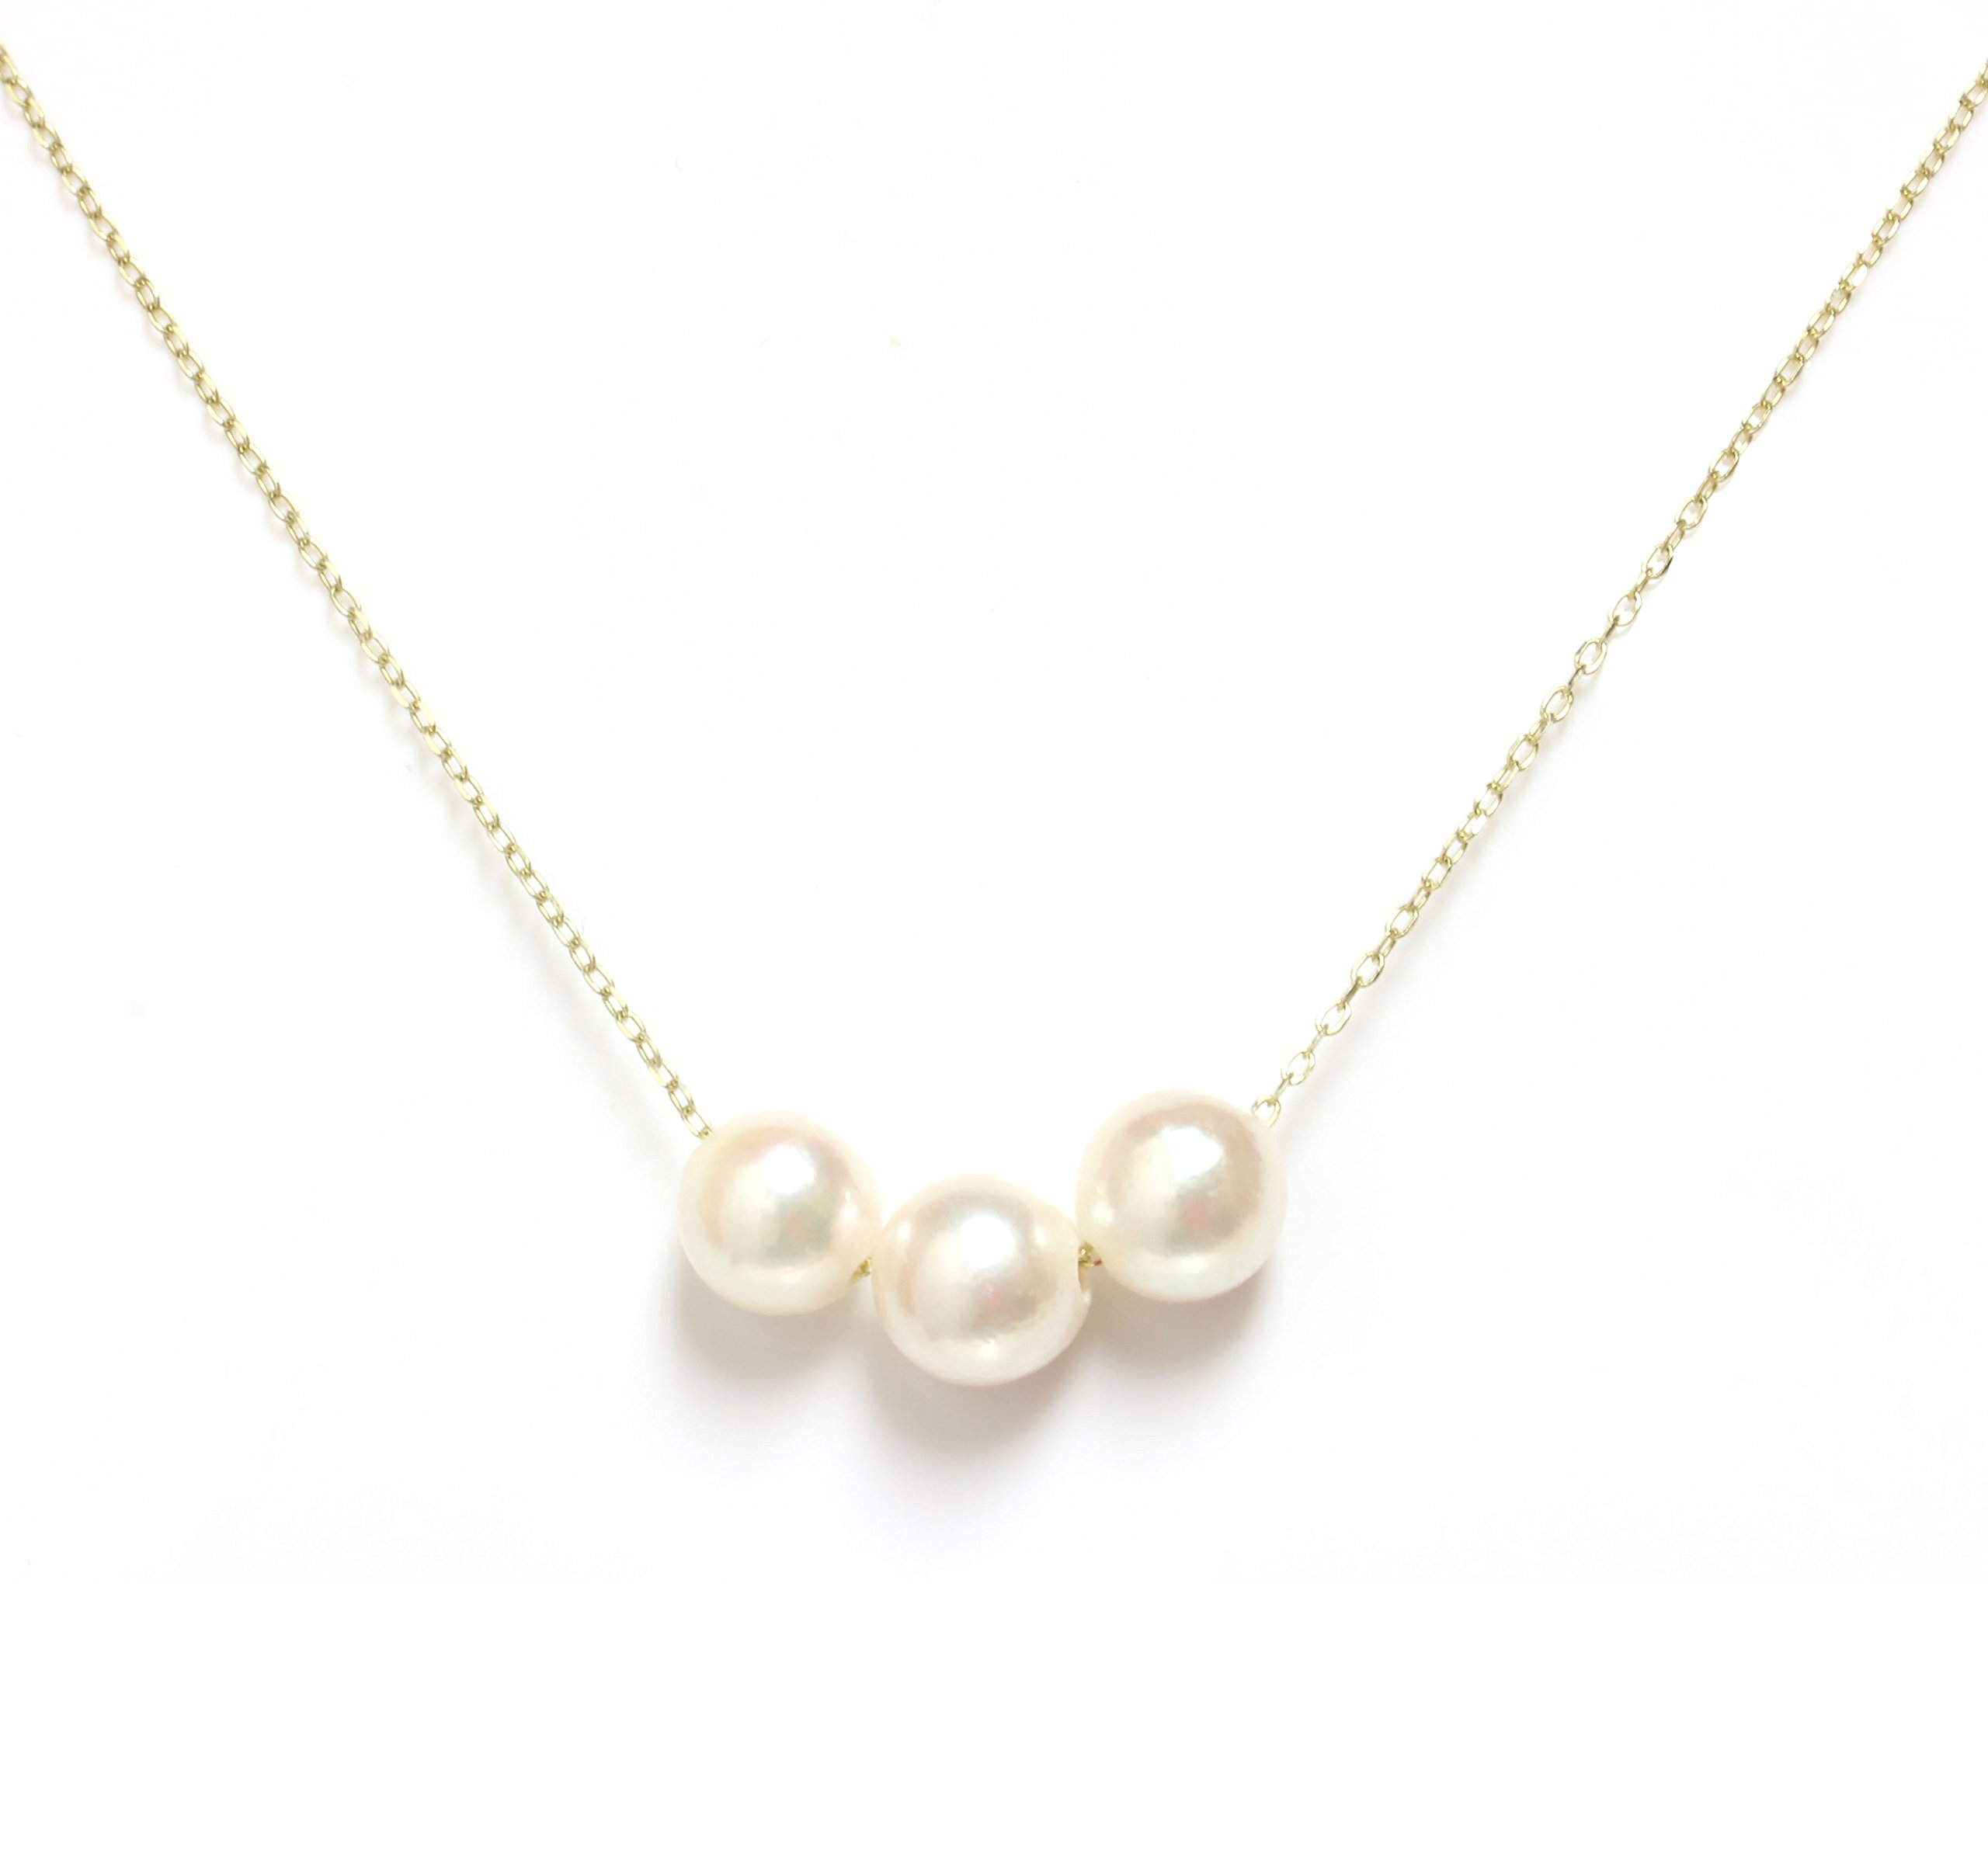 Akoya Pearl Necklace 7.5 - 8 MM 14kt Rose, White Or Yellow Gold chain 16'' or 18'' (16, yellow-gold)